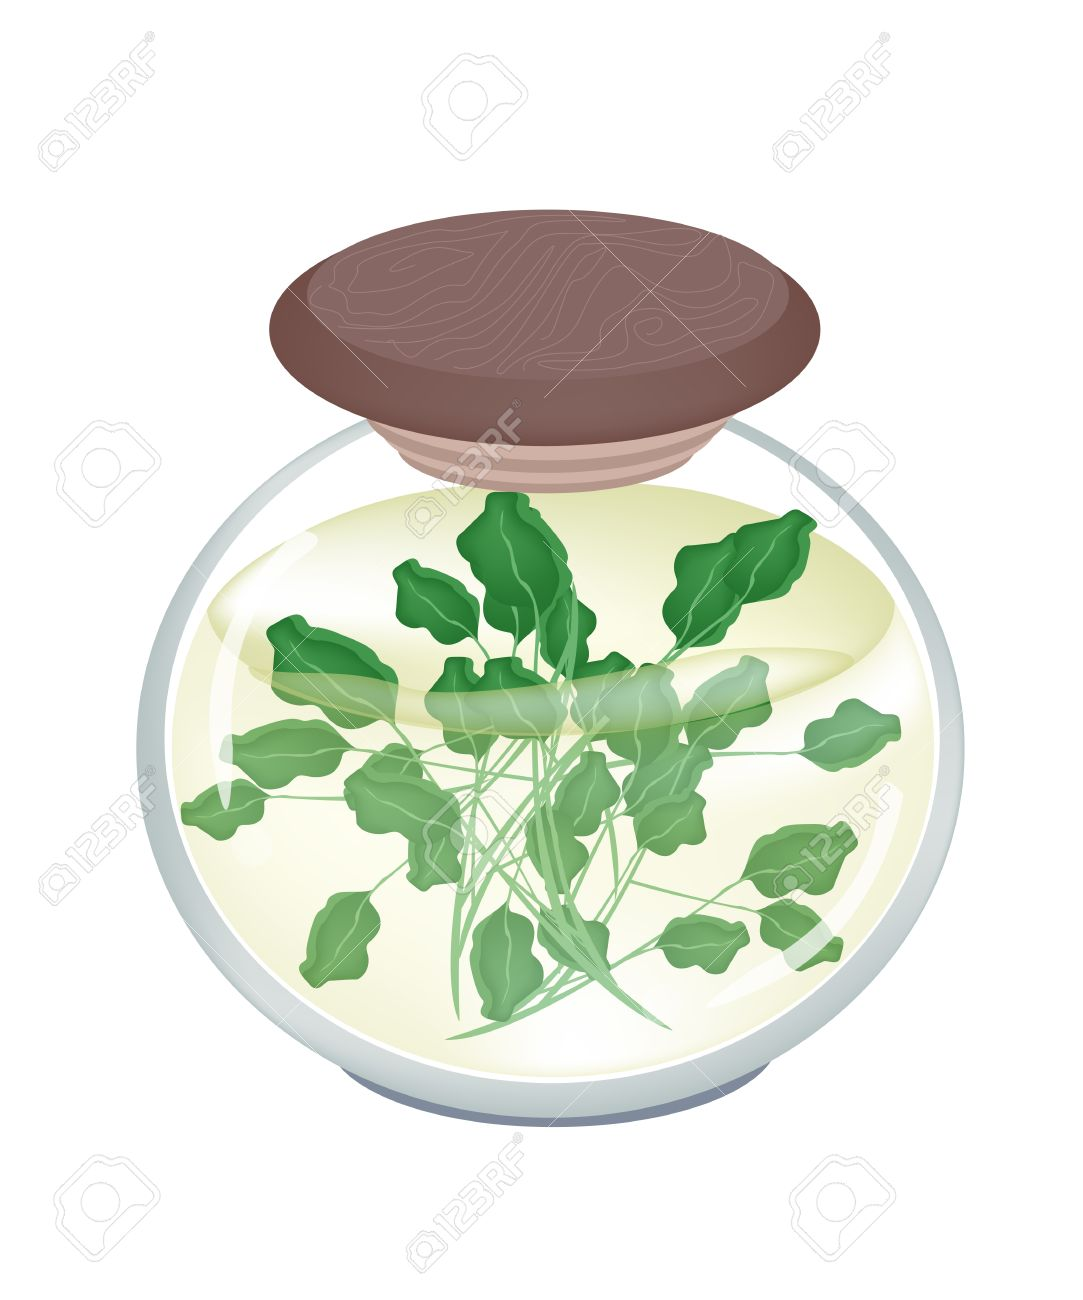 Vegetable And Herb, An Illustration Of Pickled Watercress Or.